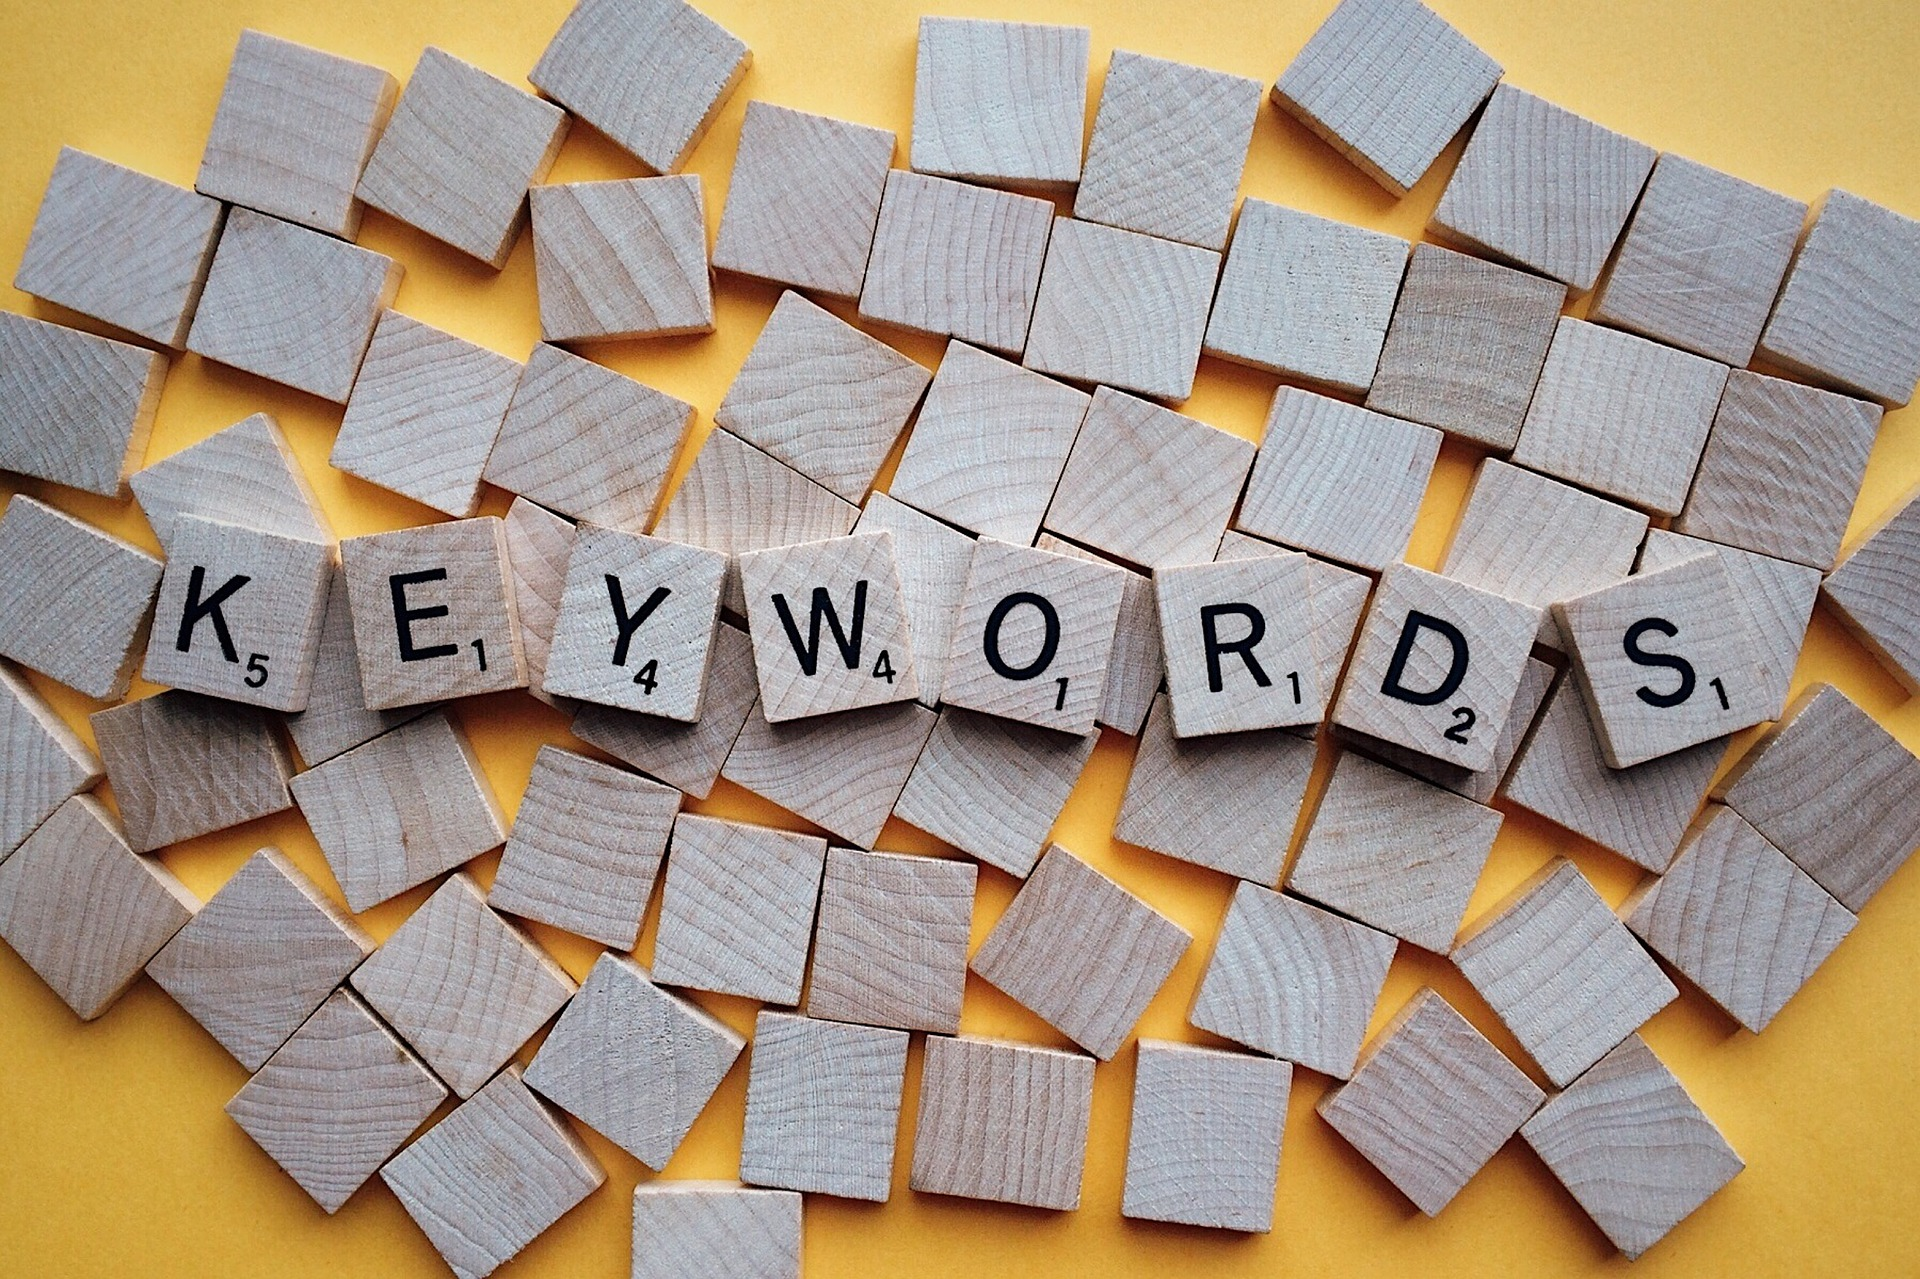 I will research 10 most profitable keywords for your website/Youtube